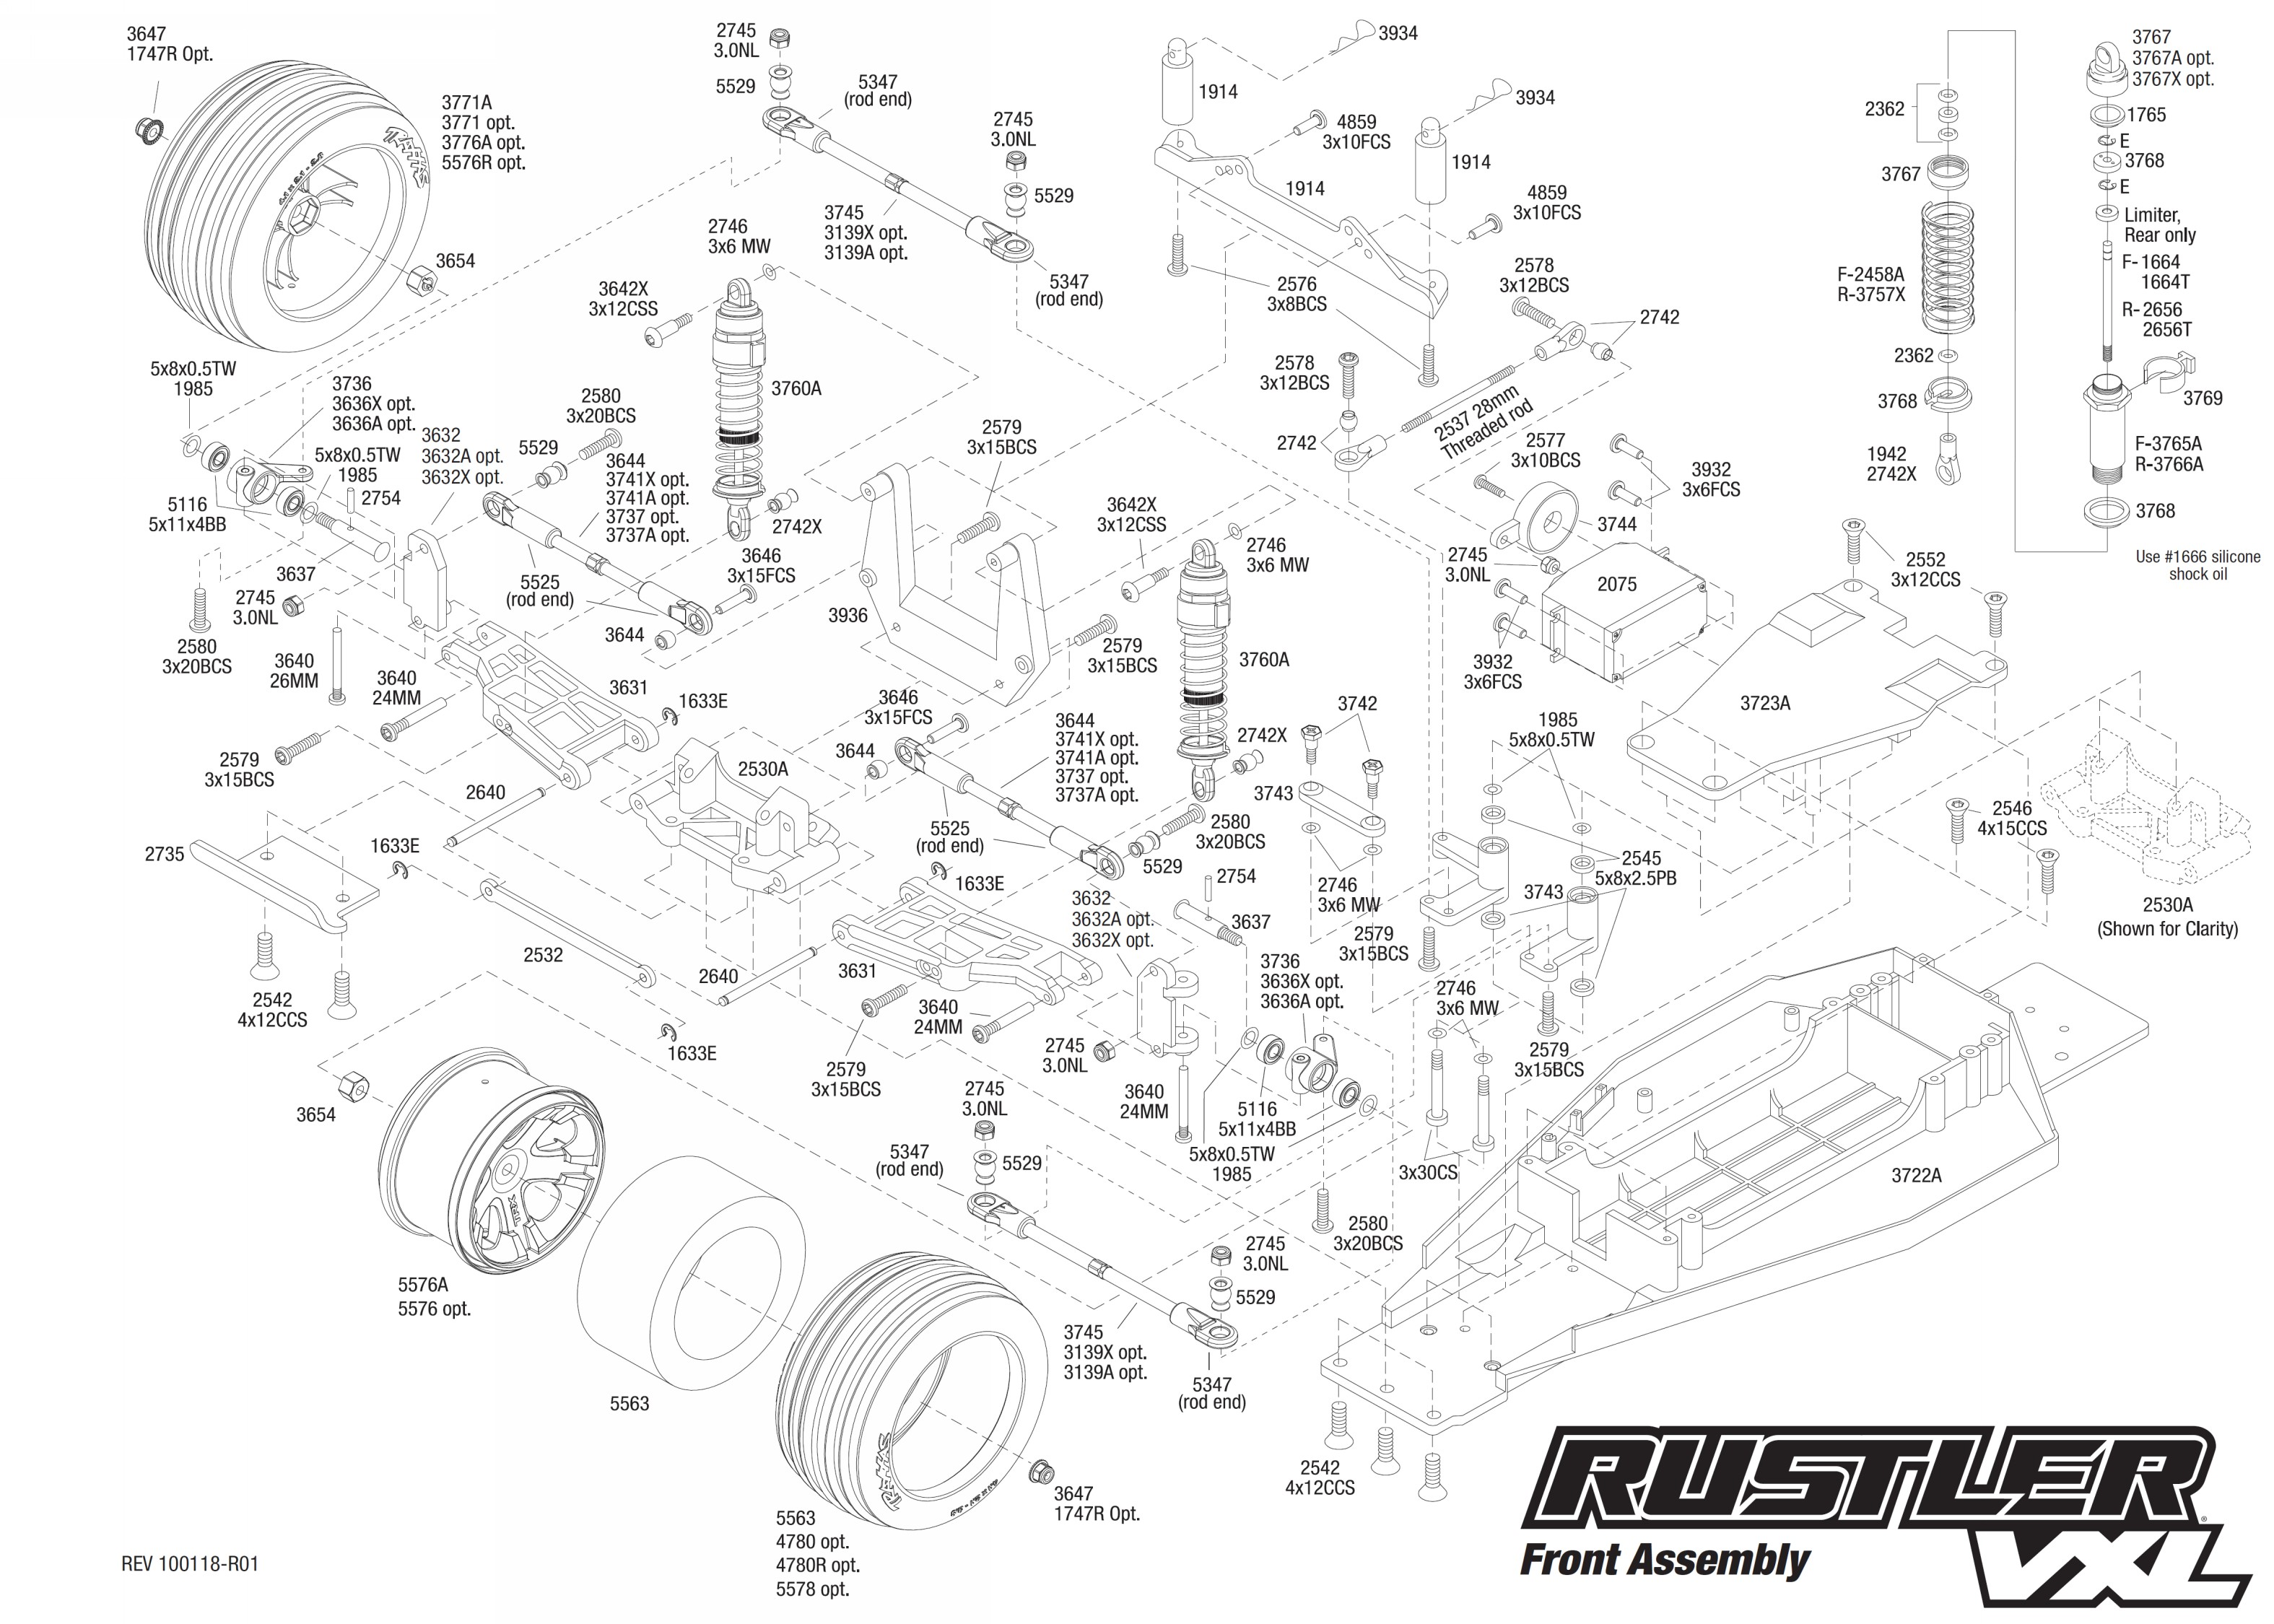 TRAXXAS RUSTLER VXL MANUAL PDF DOWNLOAD